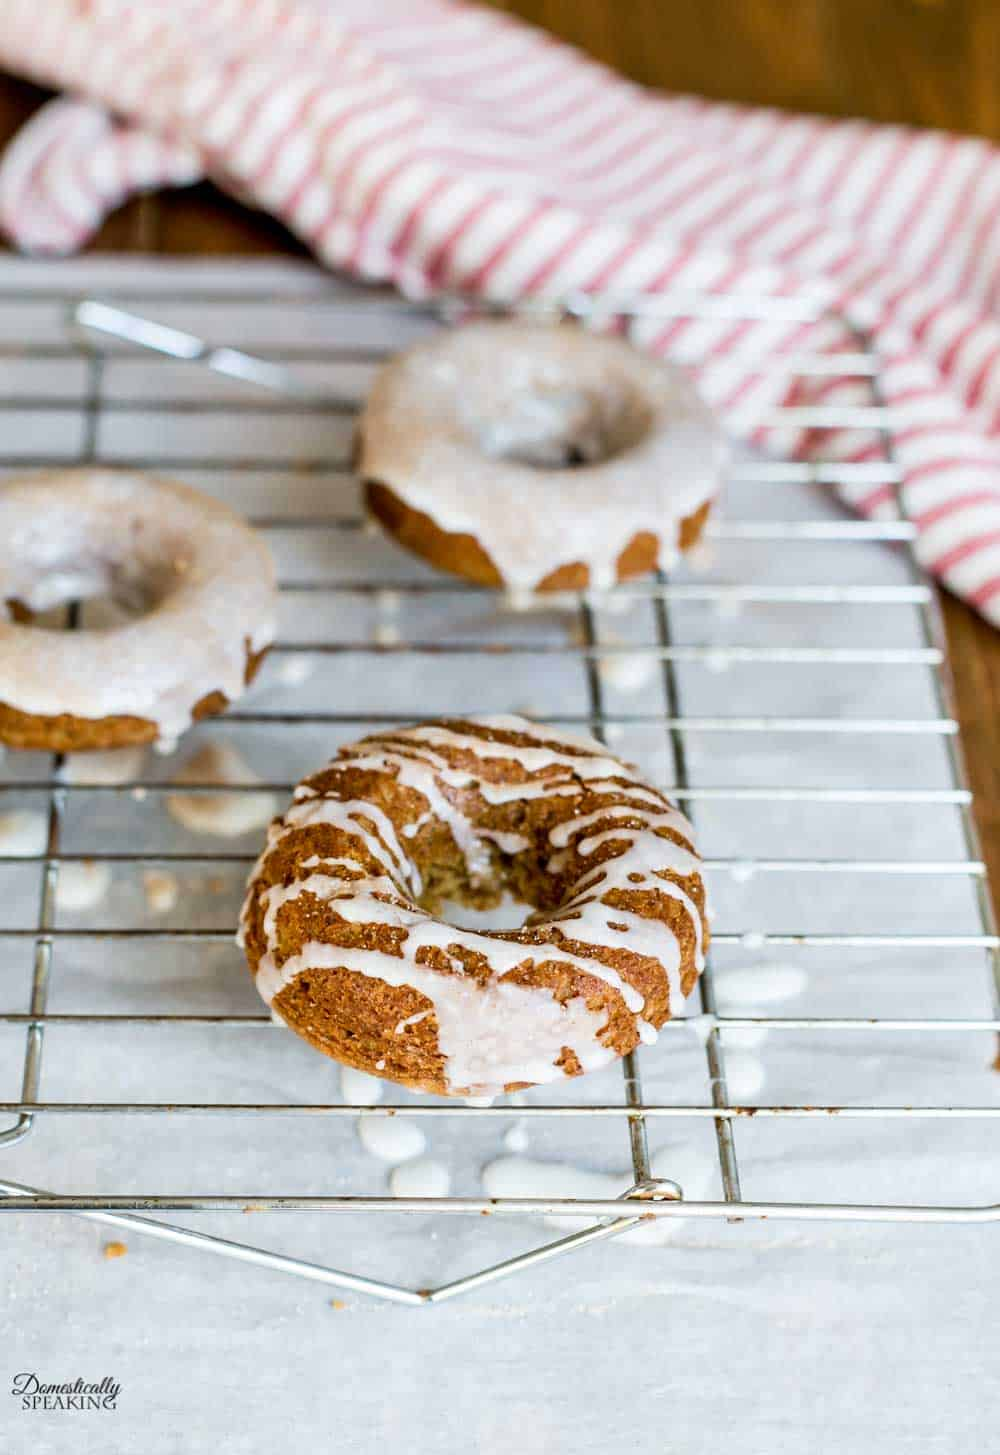 Gingerbread donuts drizzled and dunked then sprinkled with cinnamon sugar.